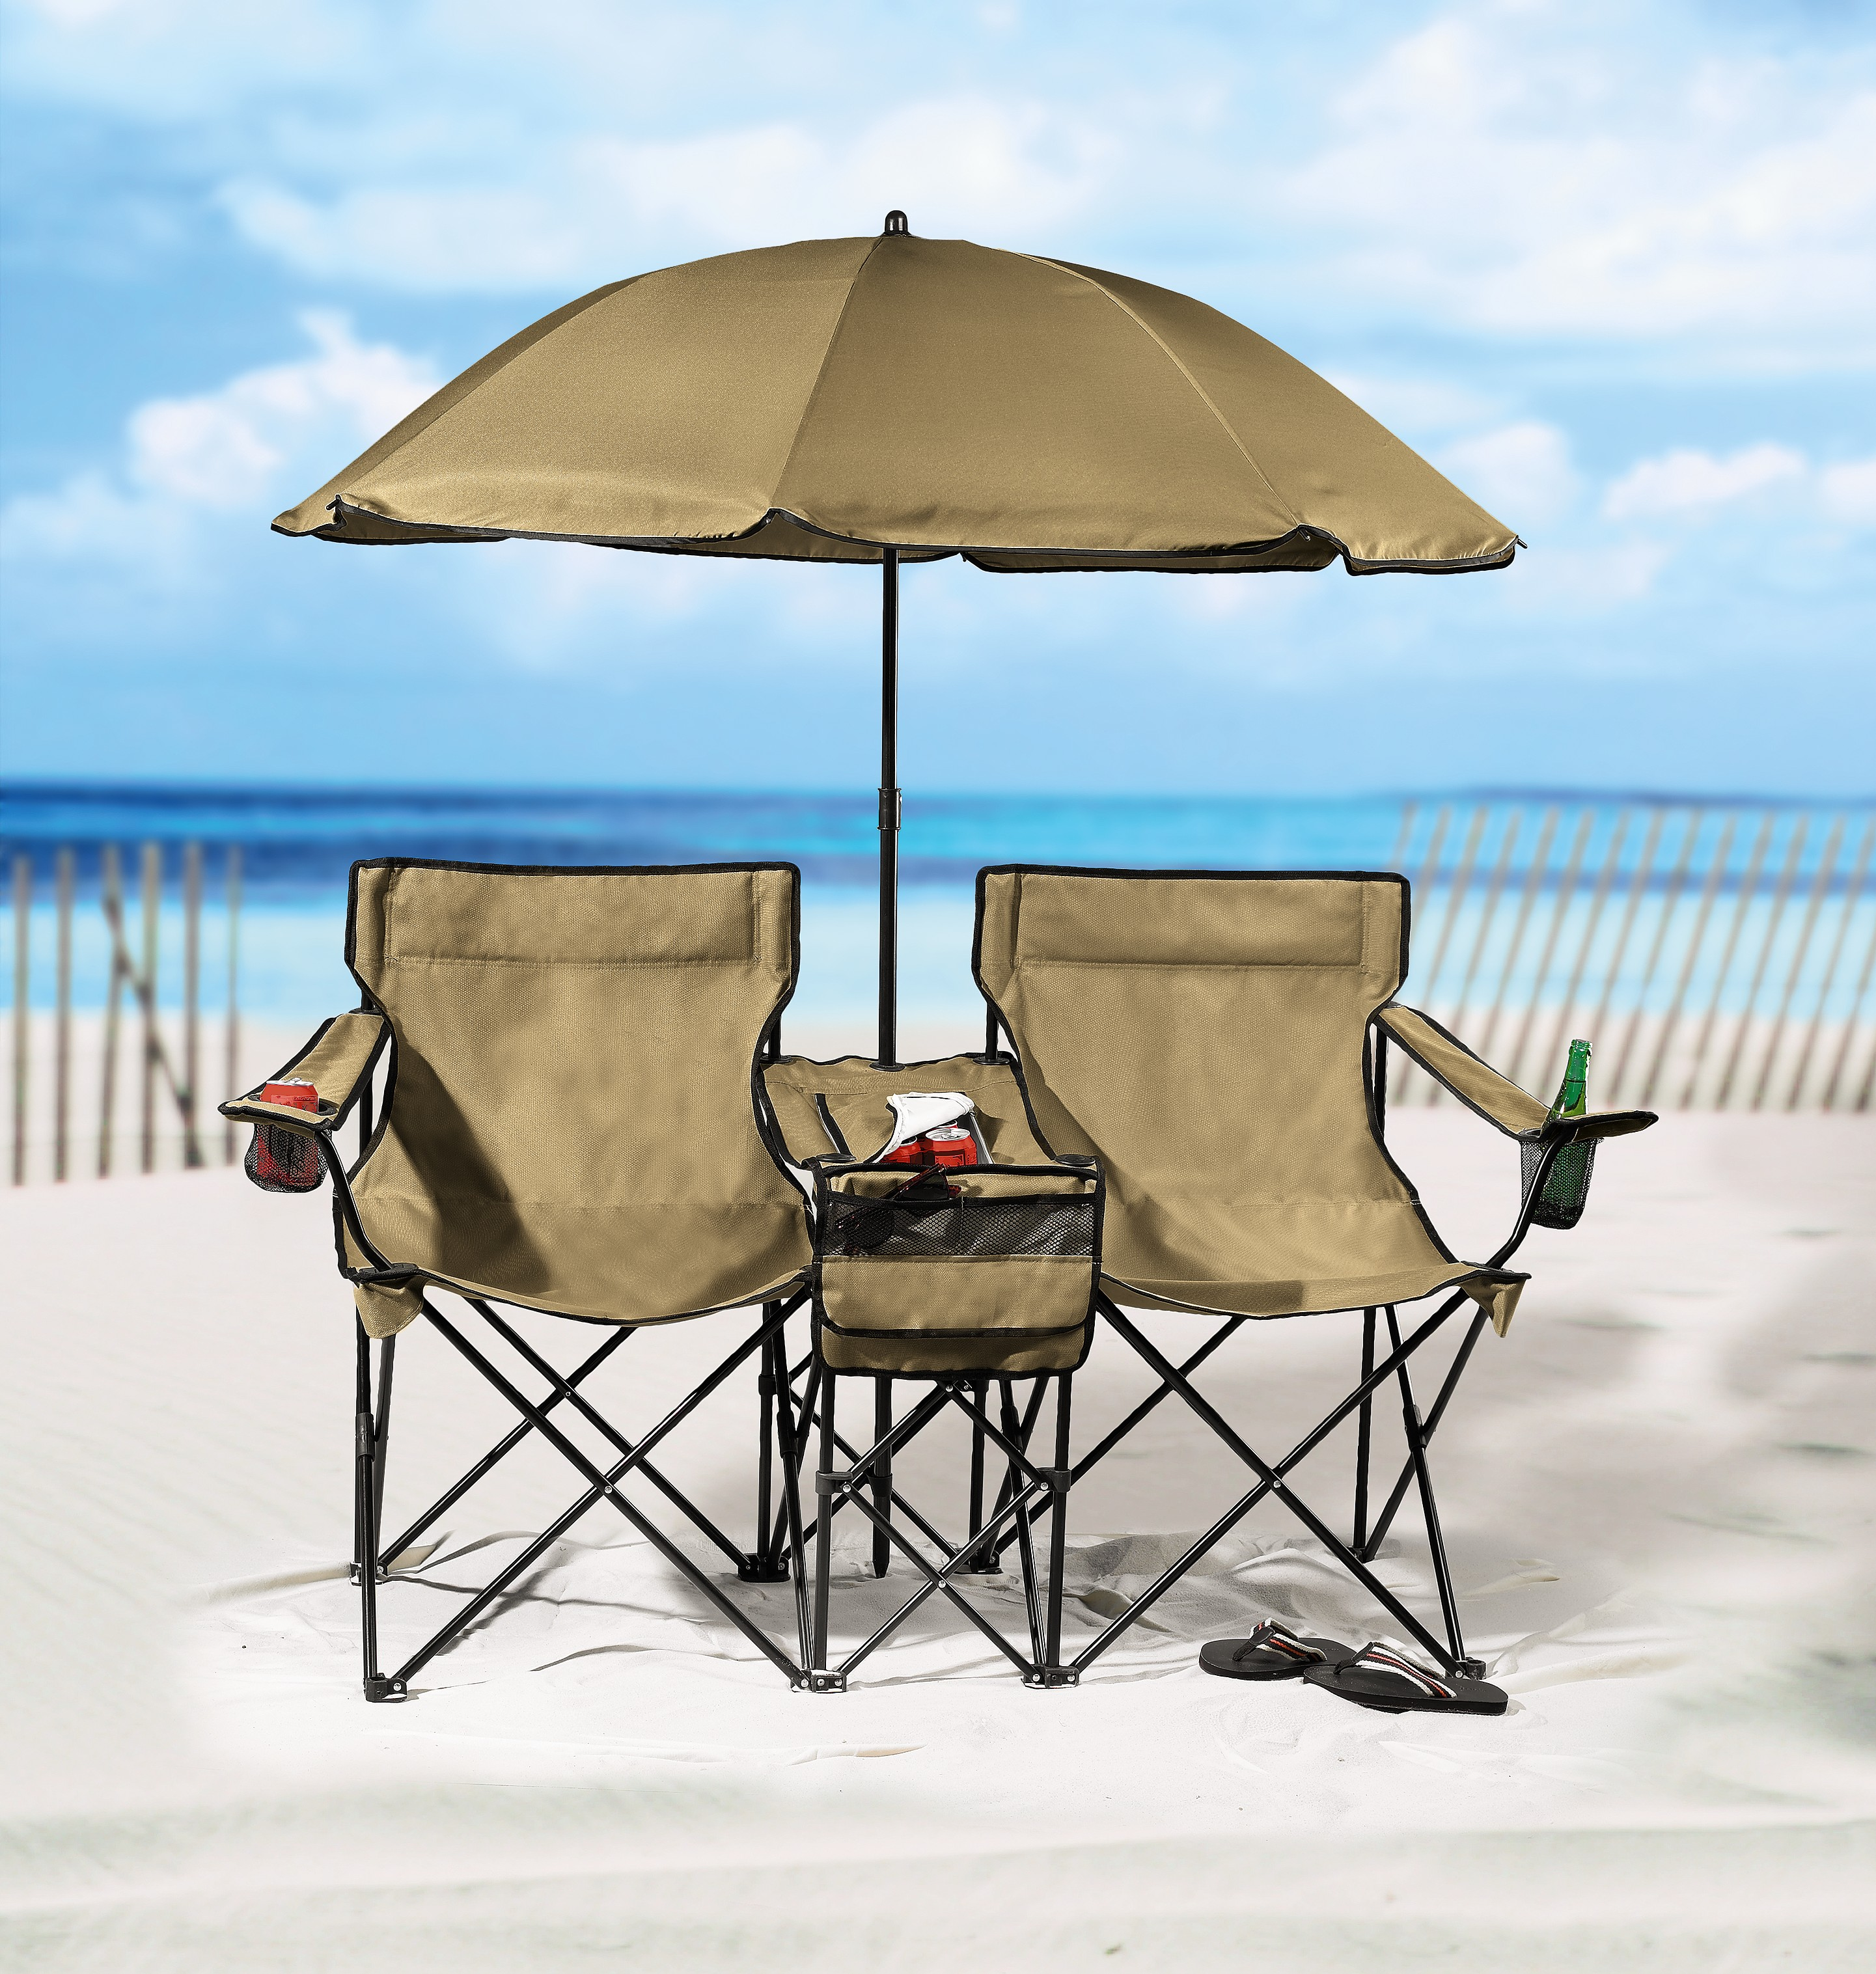 5 Piece Beach Set   BrylaneHome  Plus Size Living Collection. BrylaneHome   Home   Lifestyle Brand  Successfully Launches  Plus